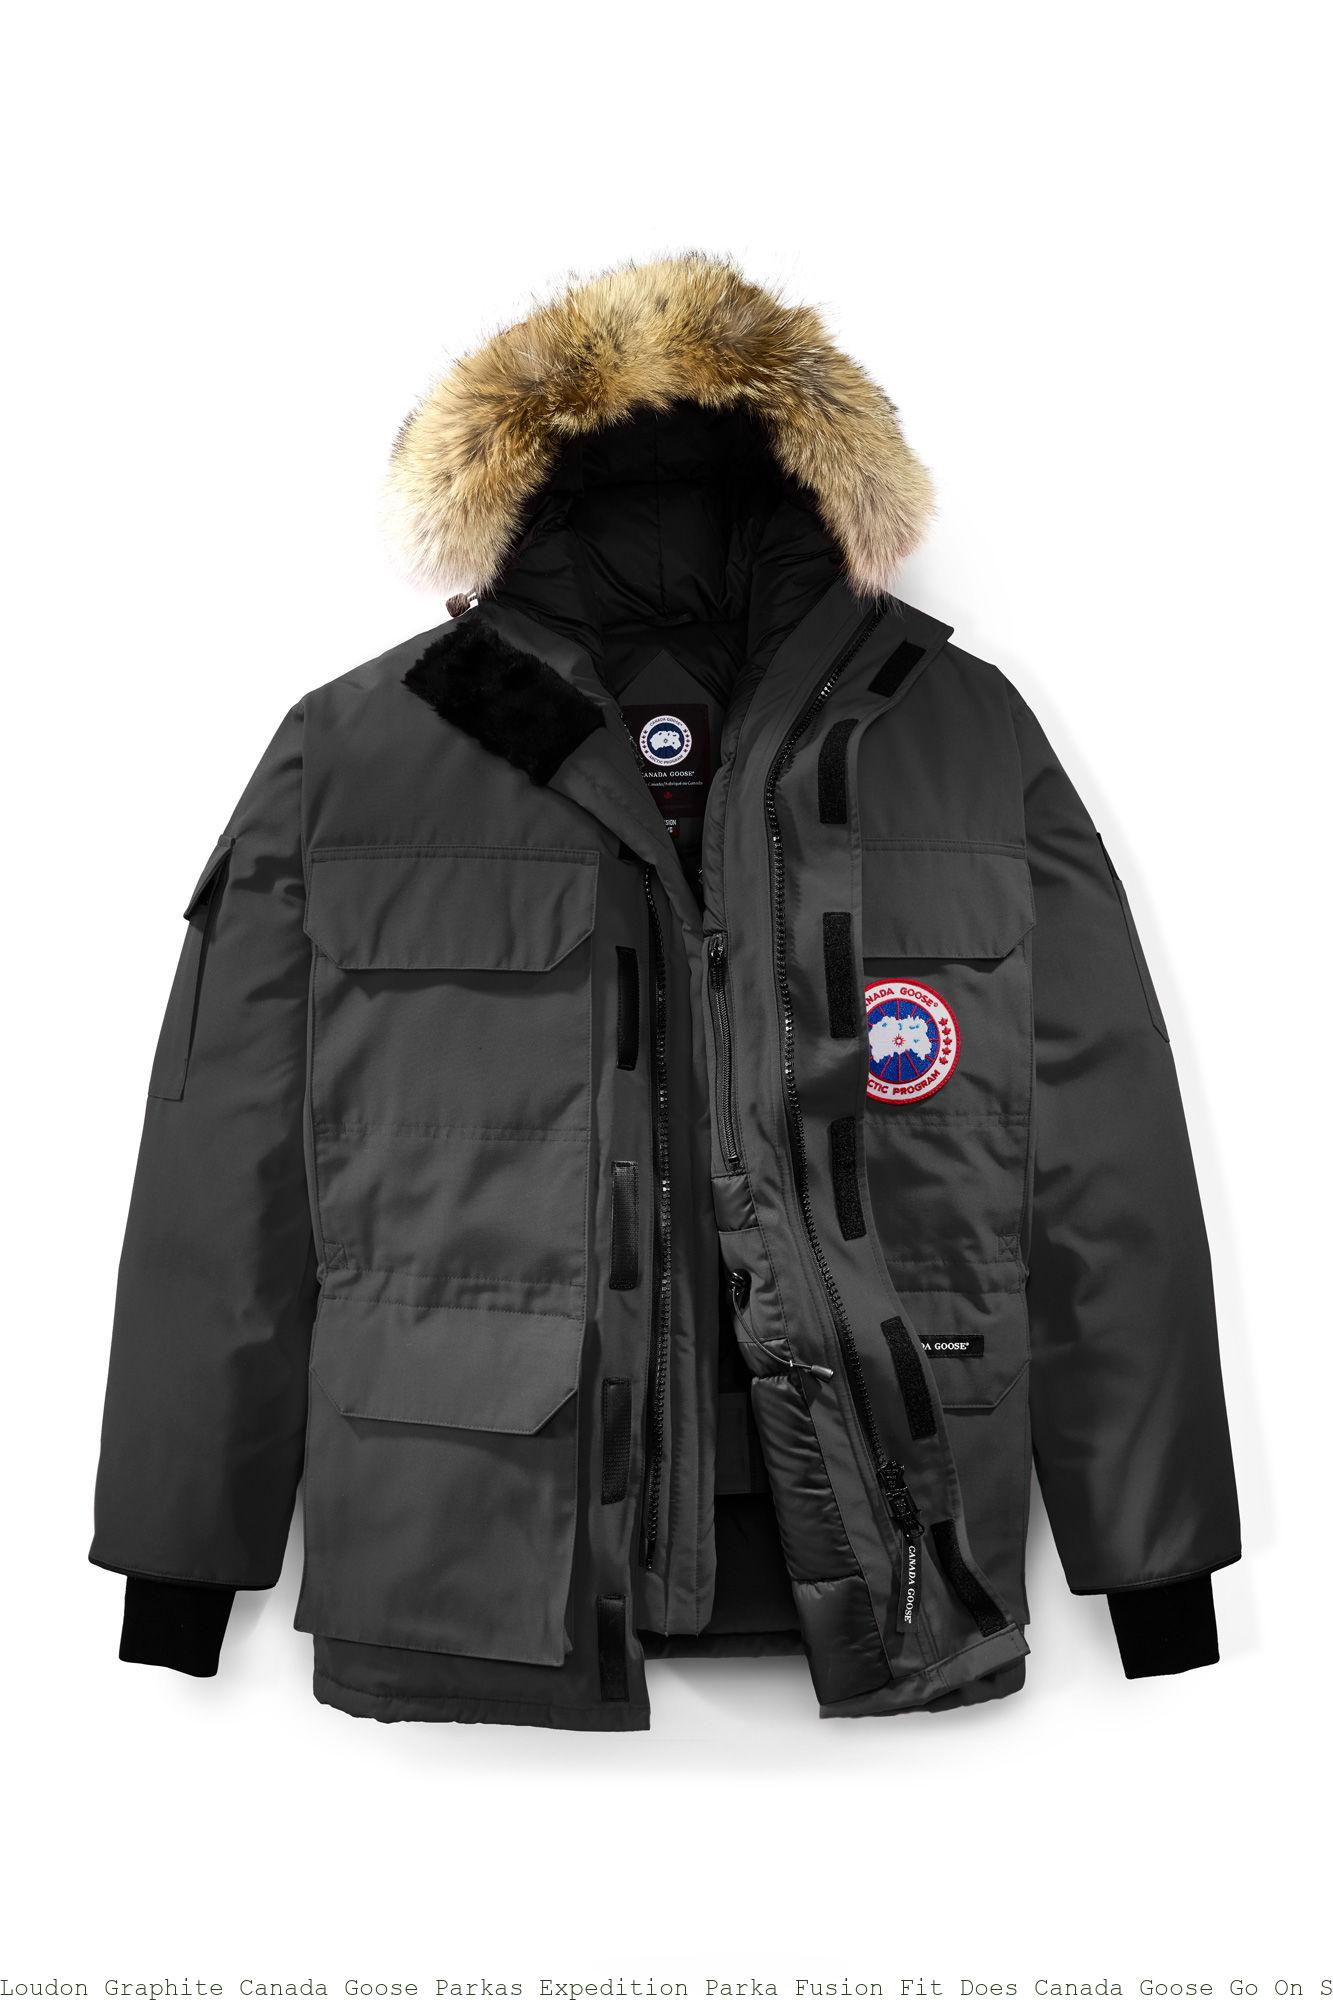 Loudon Graphite Canada Goose Parkas Expedition Parka Fusion Fit Does Canada Goose Go On Sale Black Friday 4660ma Why Cheap Canada Goose Outlet Sale Is Good Jackets